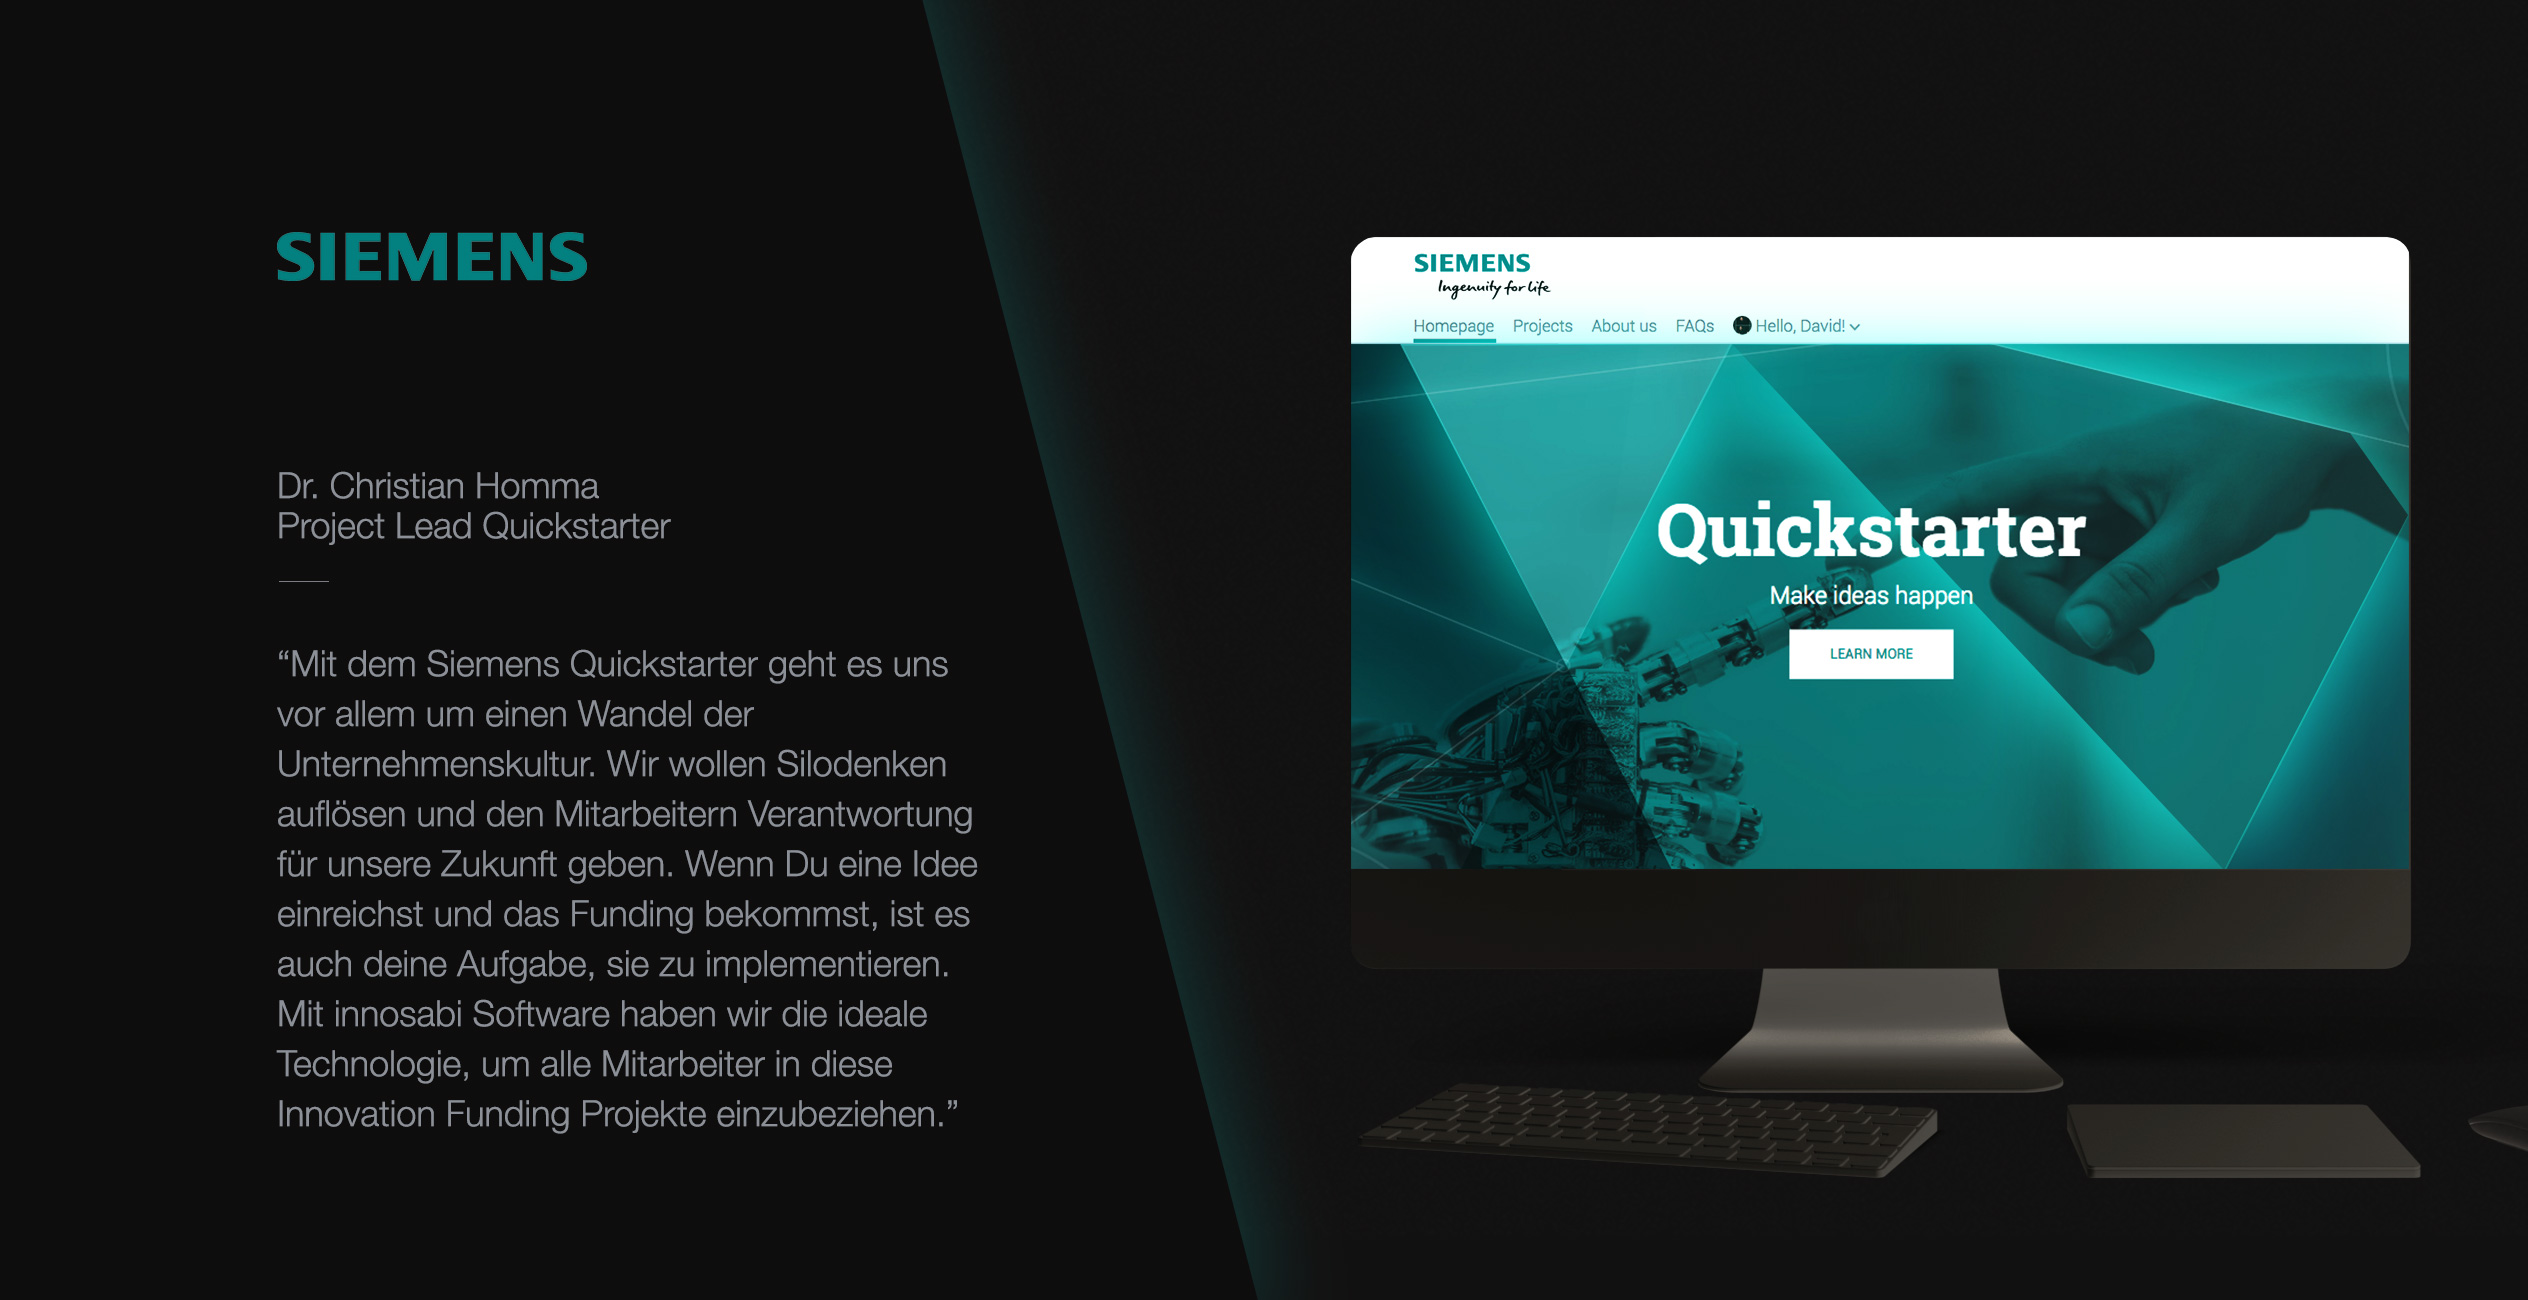 Siemens Quickstarter is about changing the company's culture. The innosabi software is the ideal tool to engage all employees on one efficient, digital platform for innovation funding.